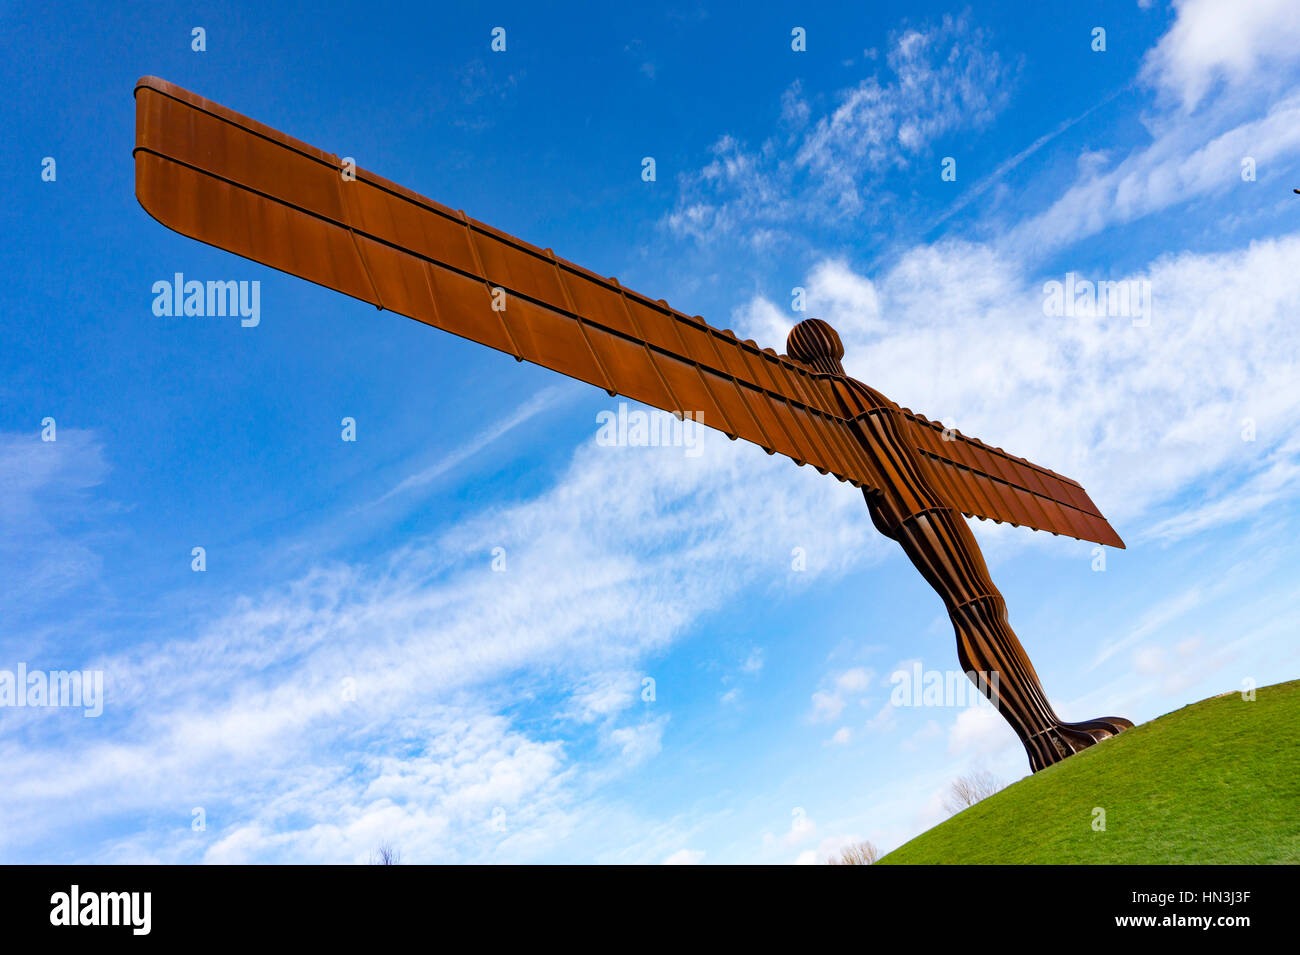 Anthony Gormleys Angel of the North Sculpture  in Gateshead - Stock Image